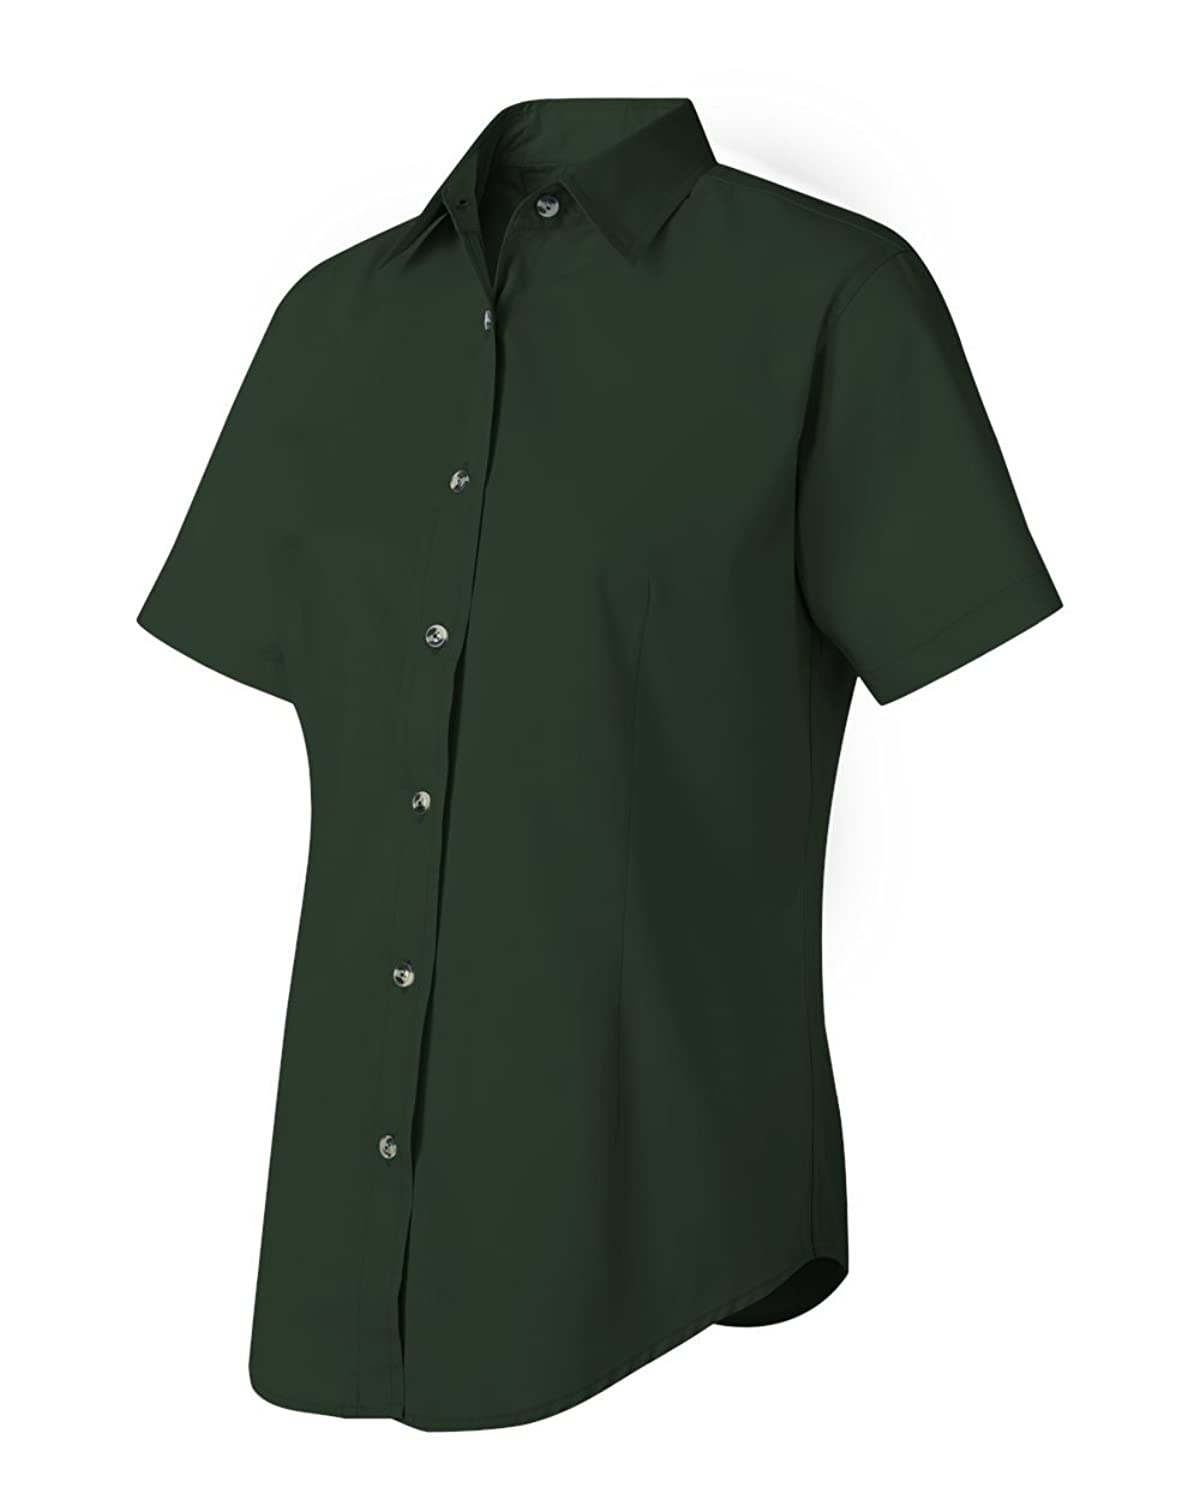 FeatherLite - Women's Short Sleeve Stain-Resistant Tapered Twill Shirt - 5281